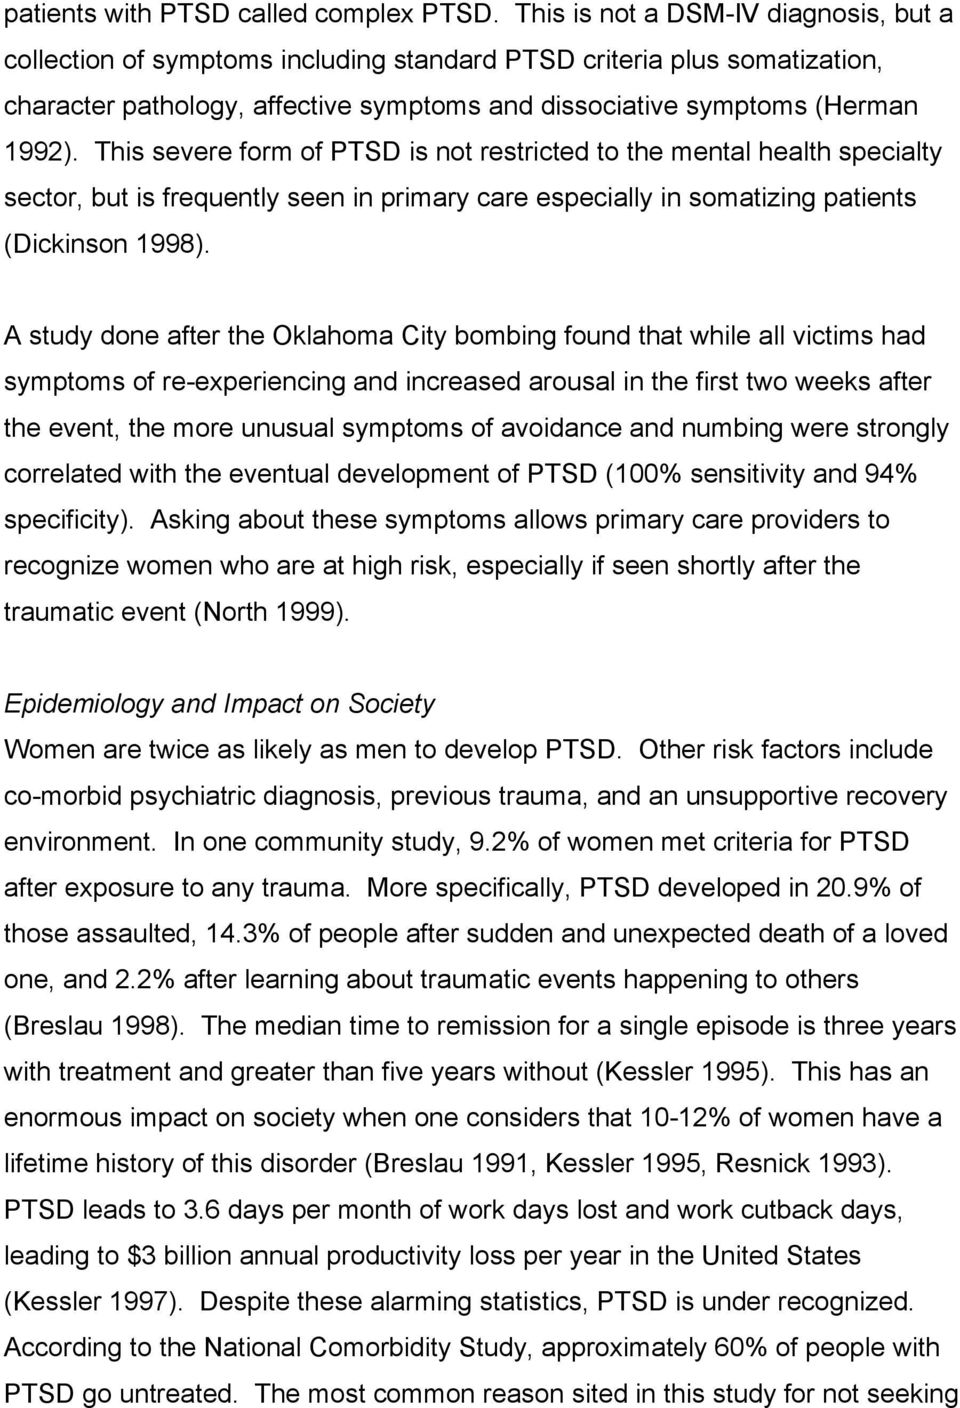 This severe form of PTSD is not restricted to the mental health specialty sector, but is frequently seen in primary care especially in somatizing patients (Dickinson 1998).